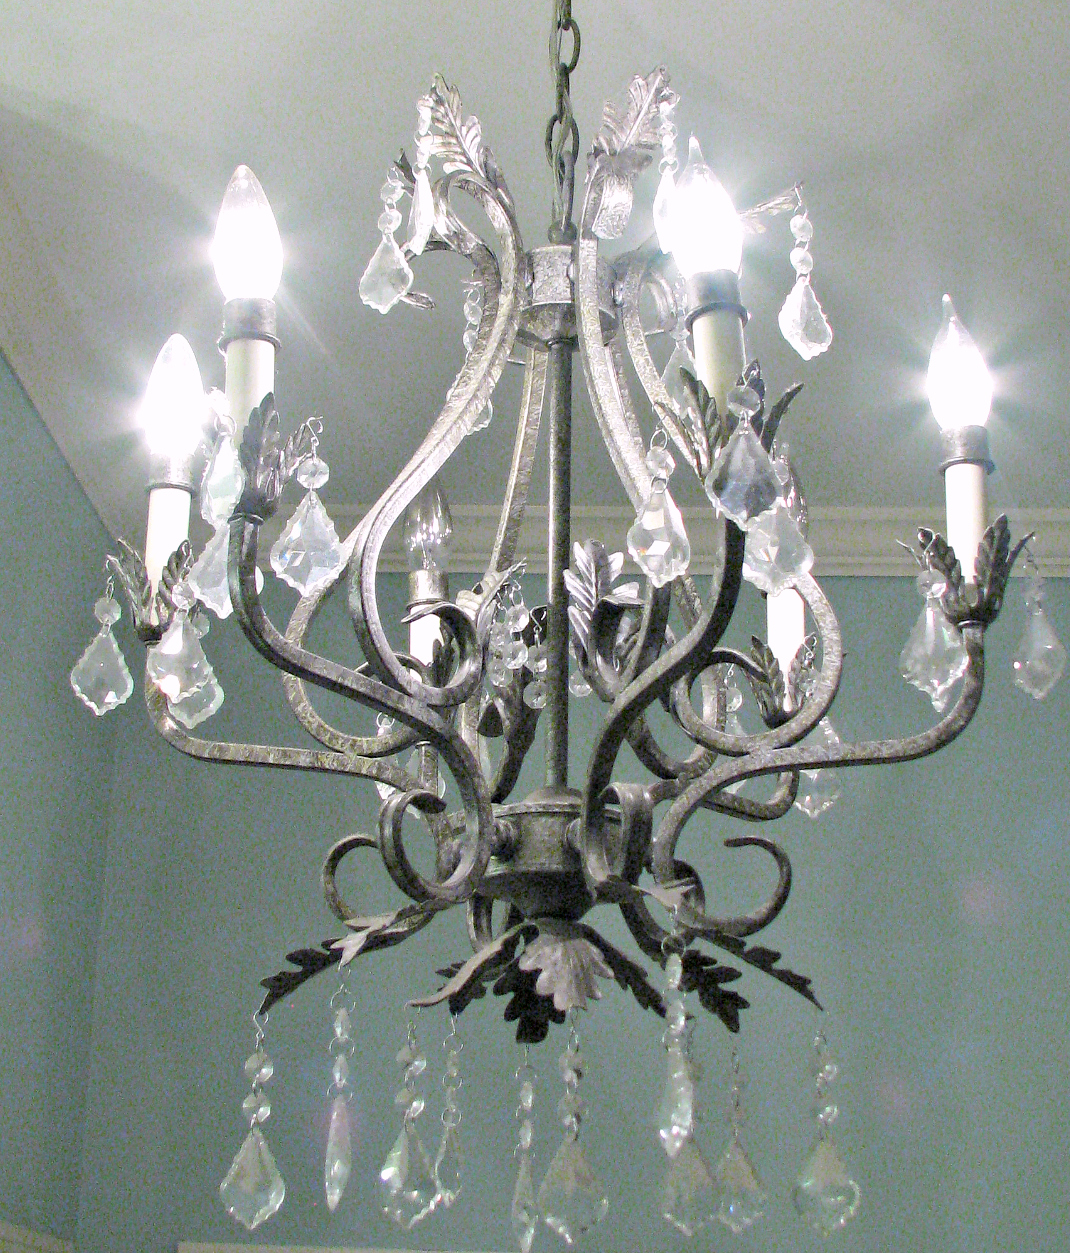 small wrought iron chandelier in bathroom with crystals